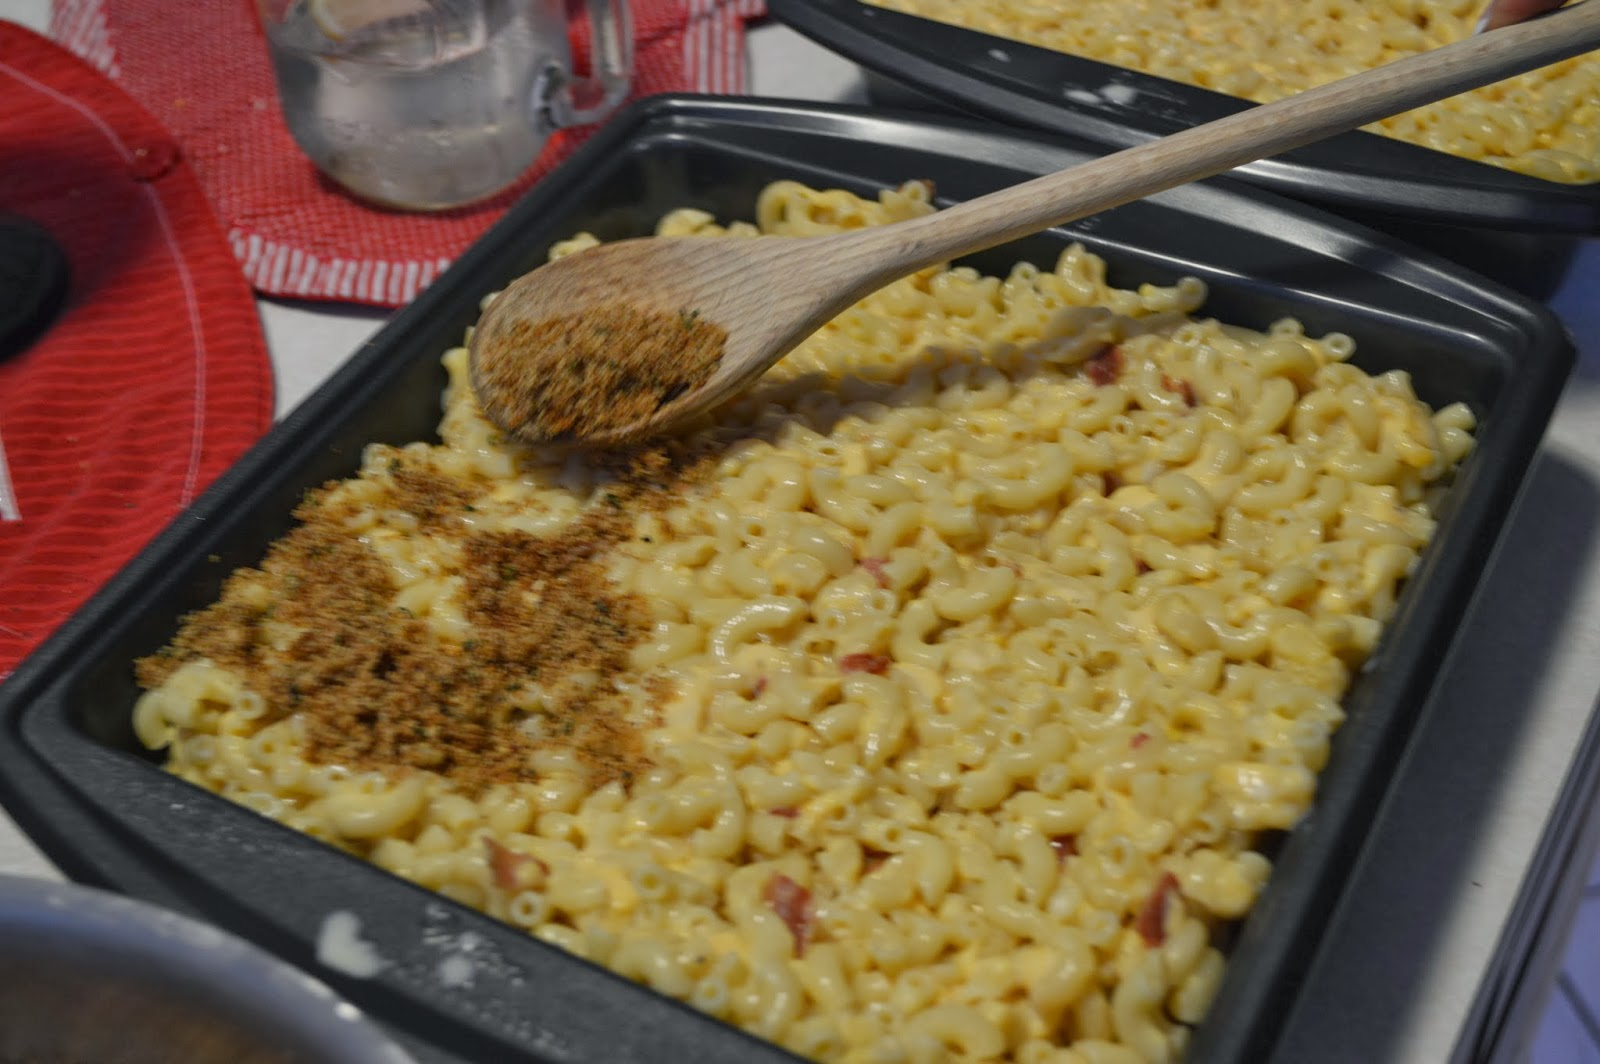 ... Everything But The Kitchen Sink Part 1: Mac & Cheese Freezer Meal